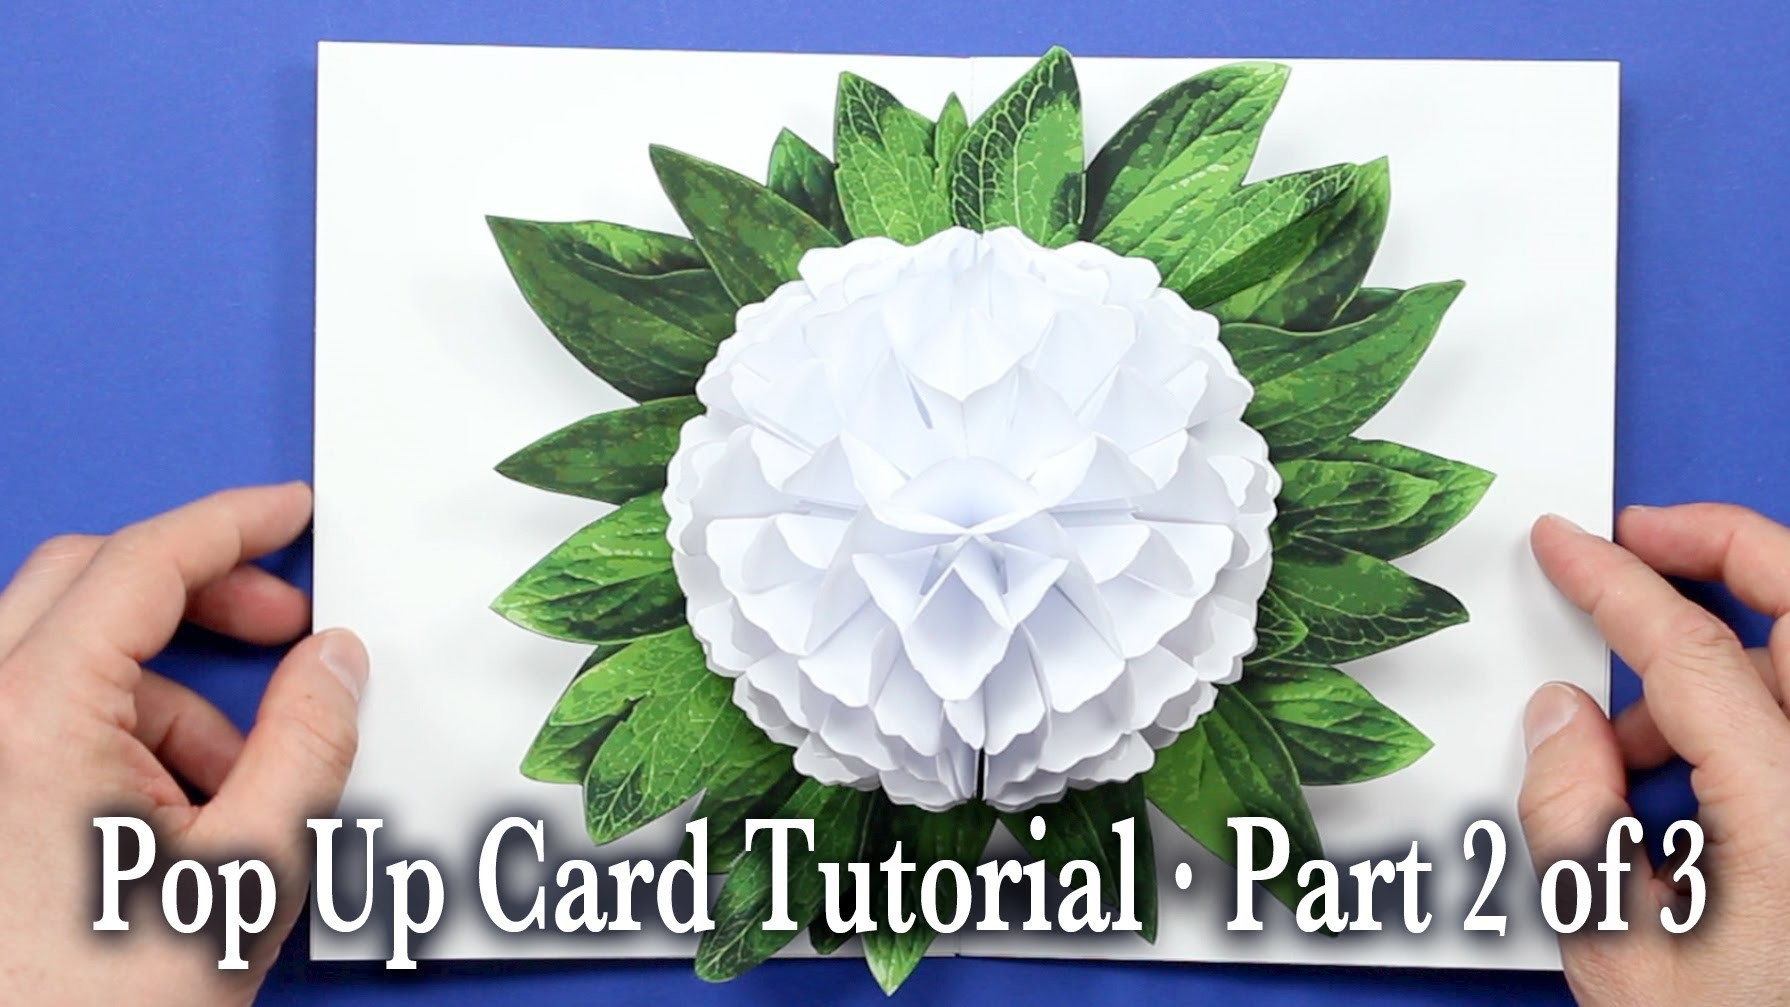 Flower Pop Up Card Tutorial Part 2 of 3